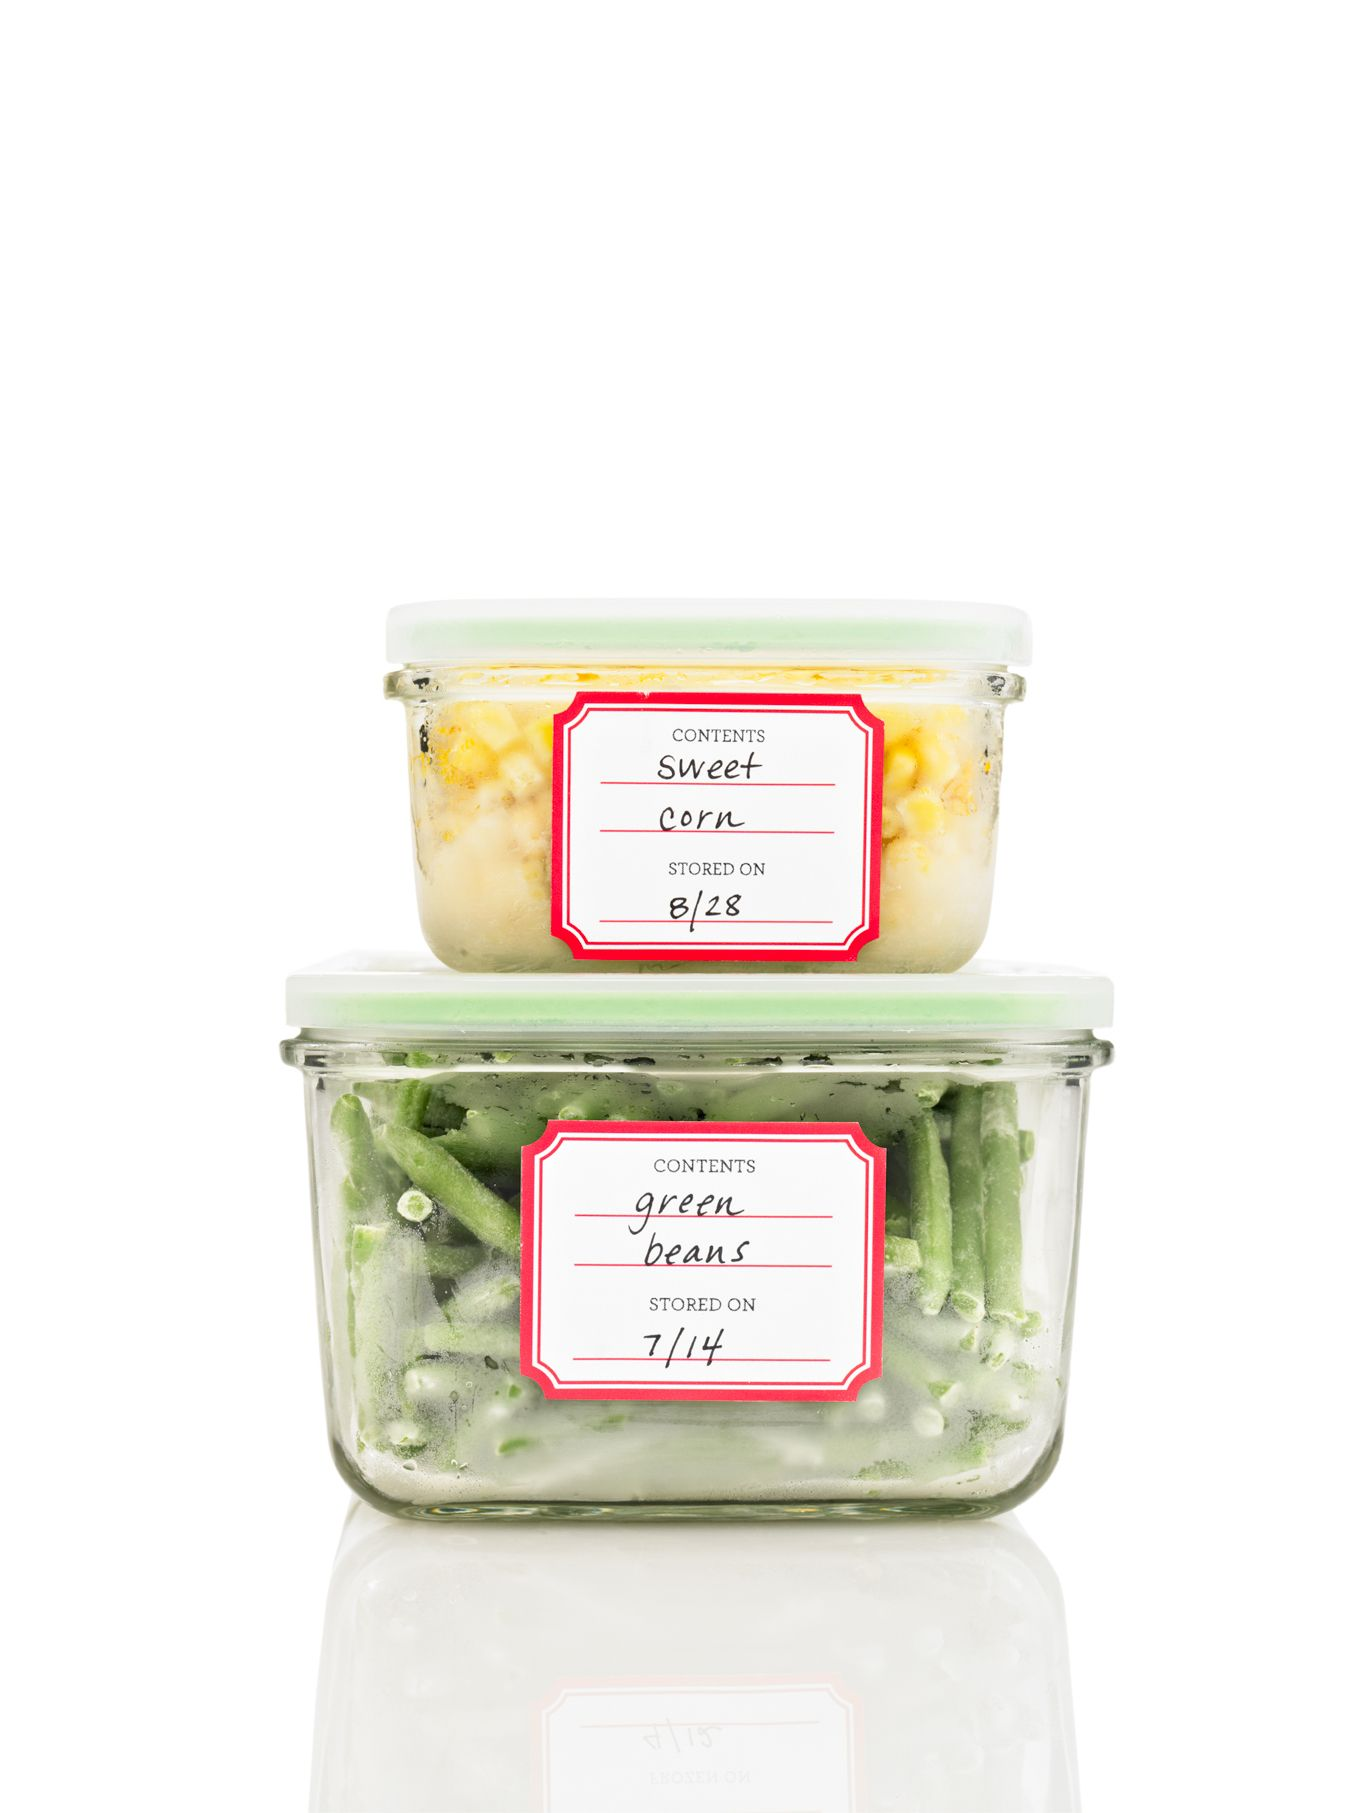 Martha Stewart Home Office Kitchen Labels Stay On In The Freezer And